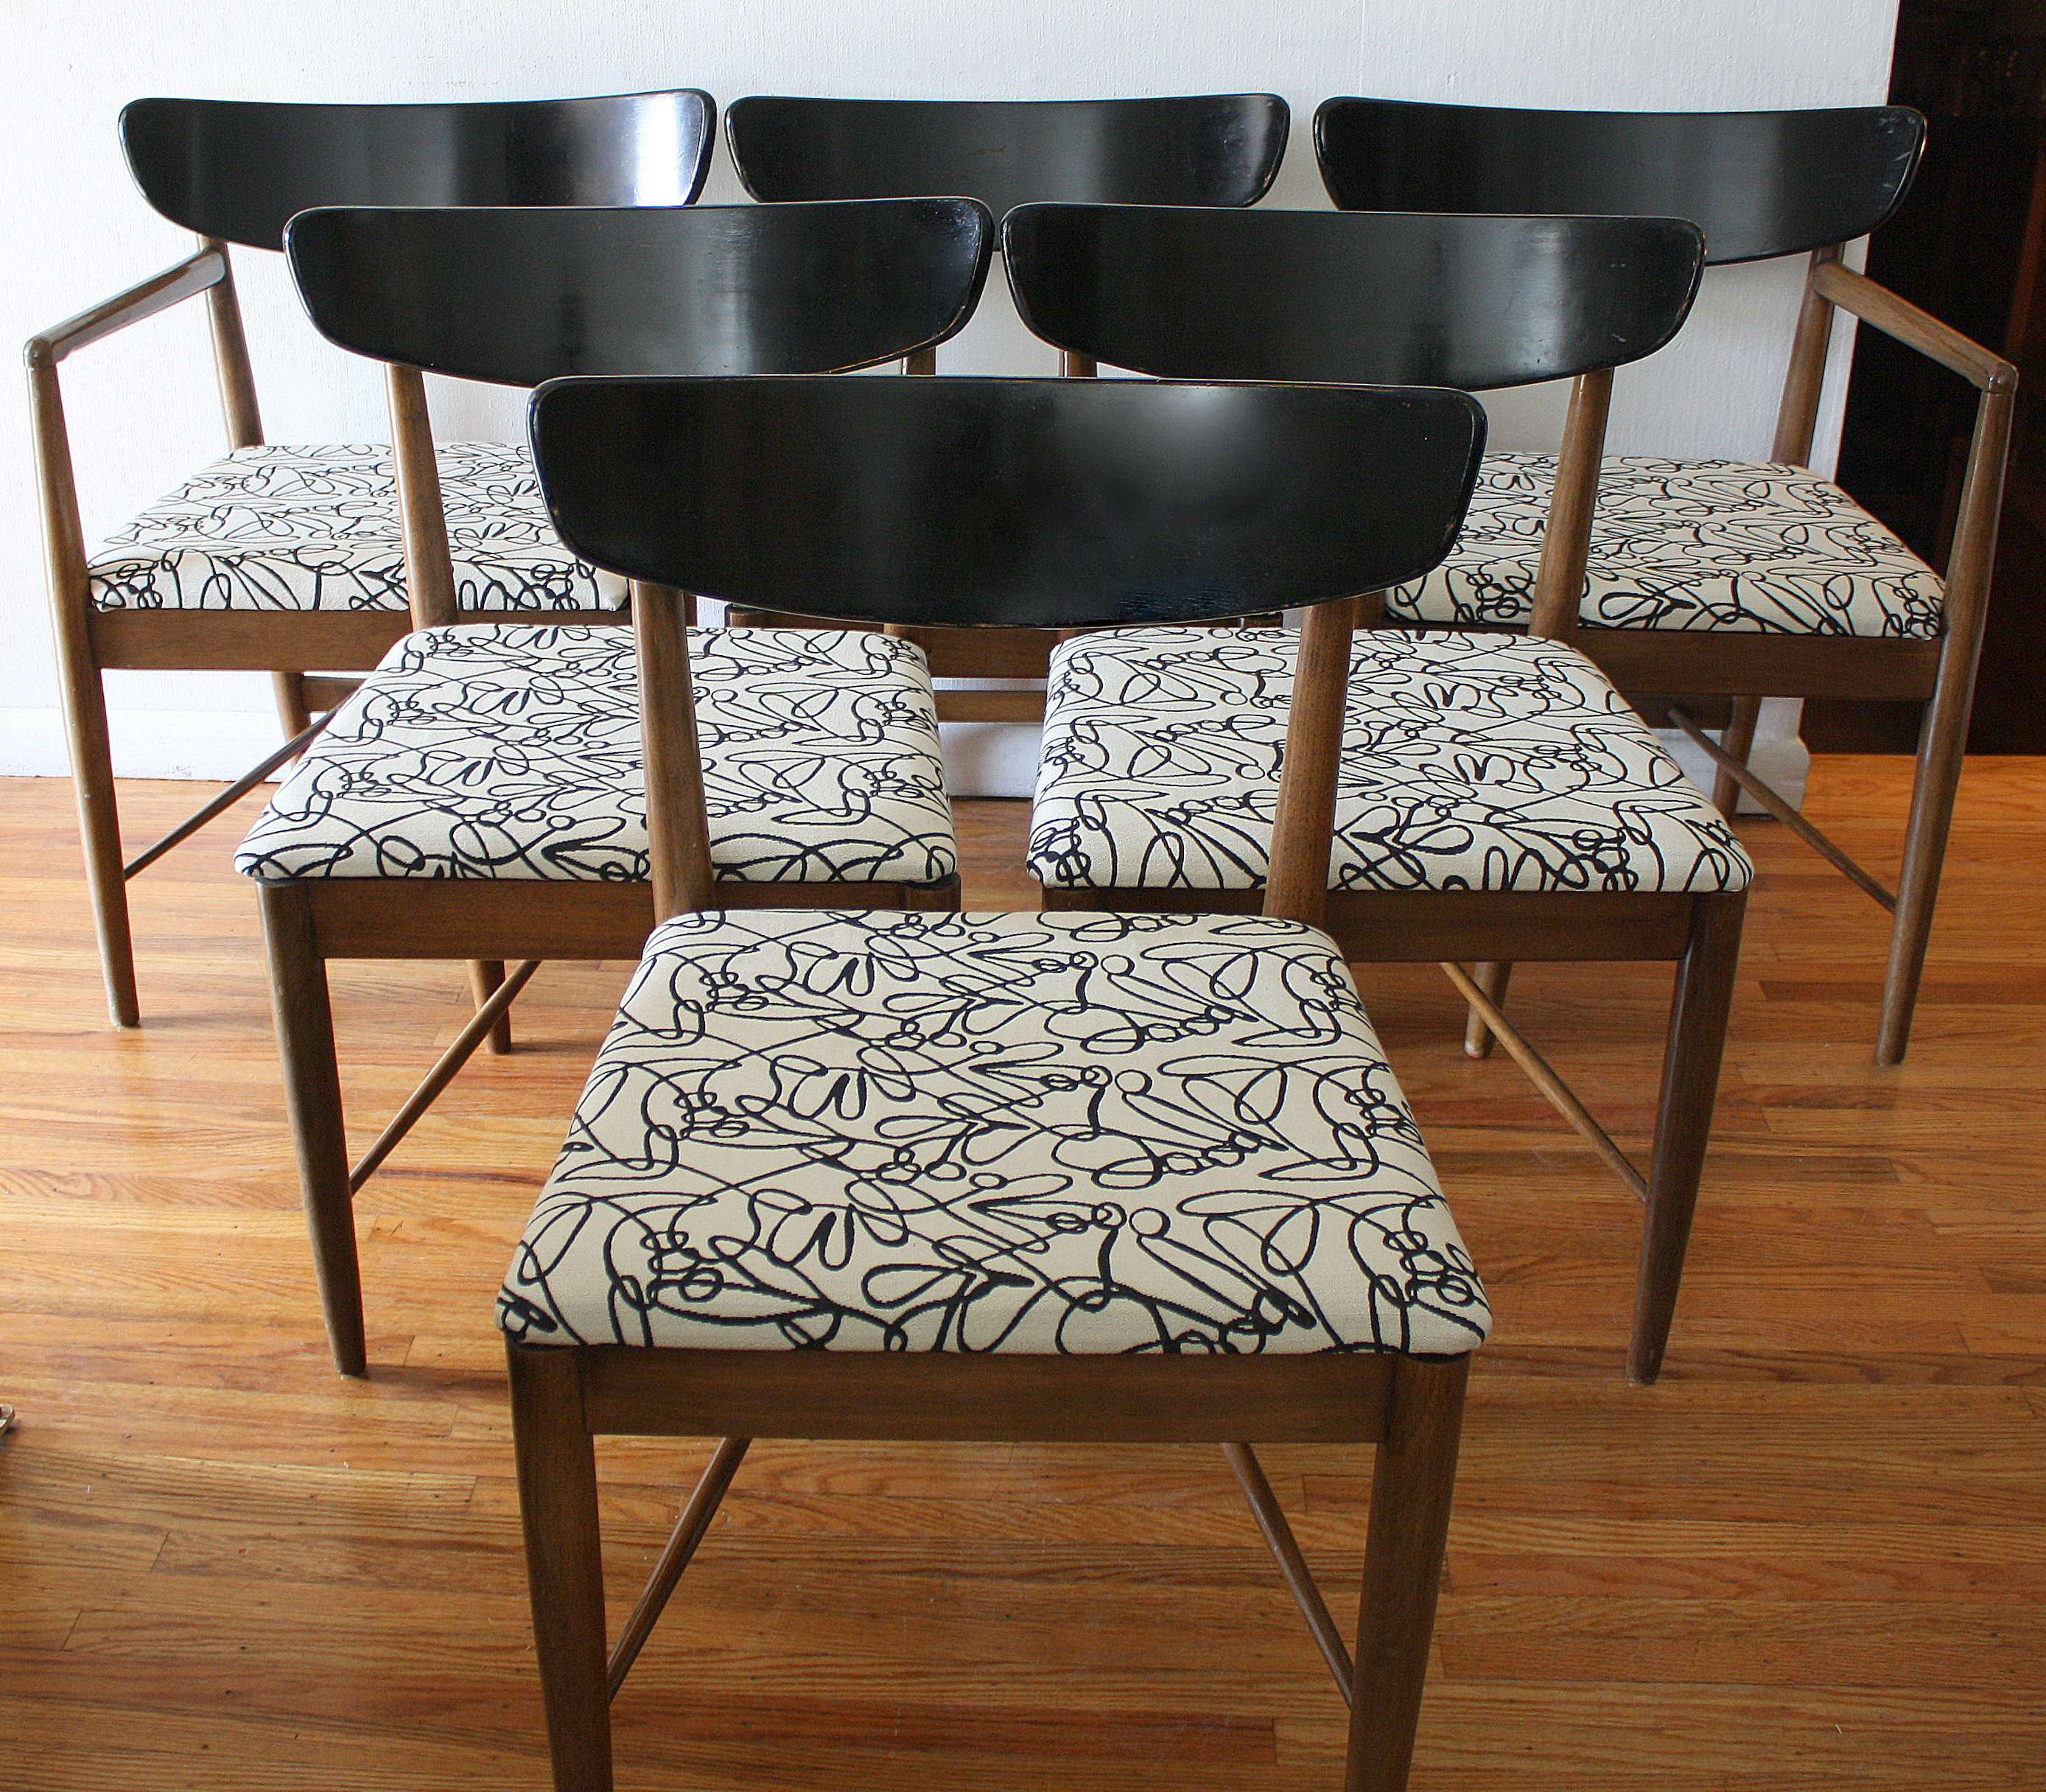 Black And White Chair Mid Century Modern Dining Chair Sets Picked Vintage